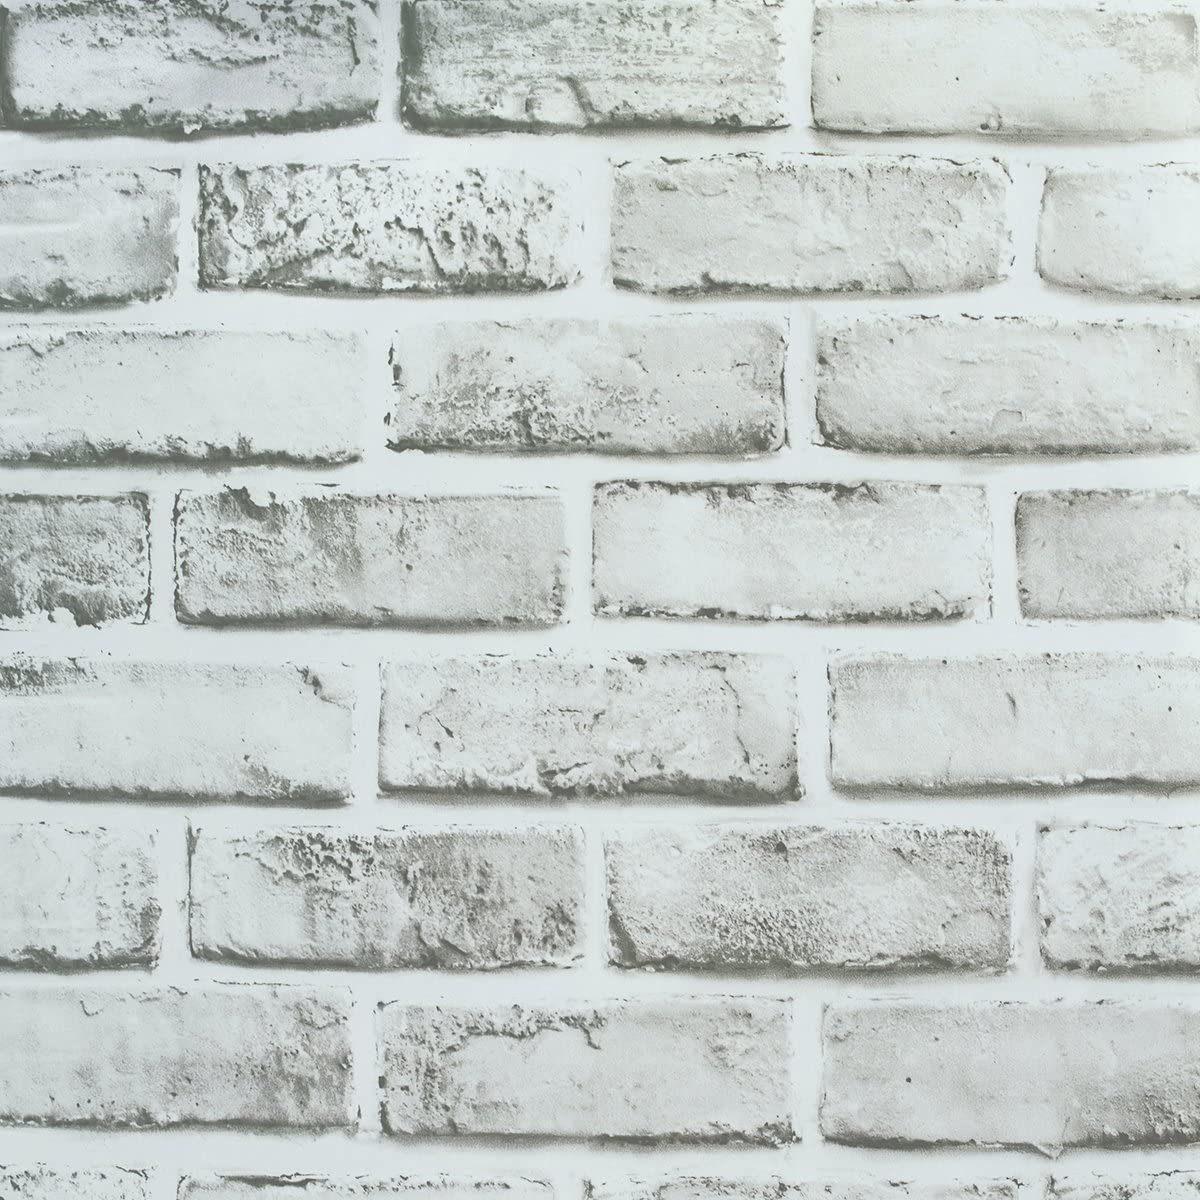 Wallpaper Brick, Removable Self-Adhesive Contact Paper Roll for Room Decor (17.71x 197 inches)